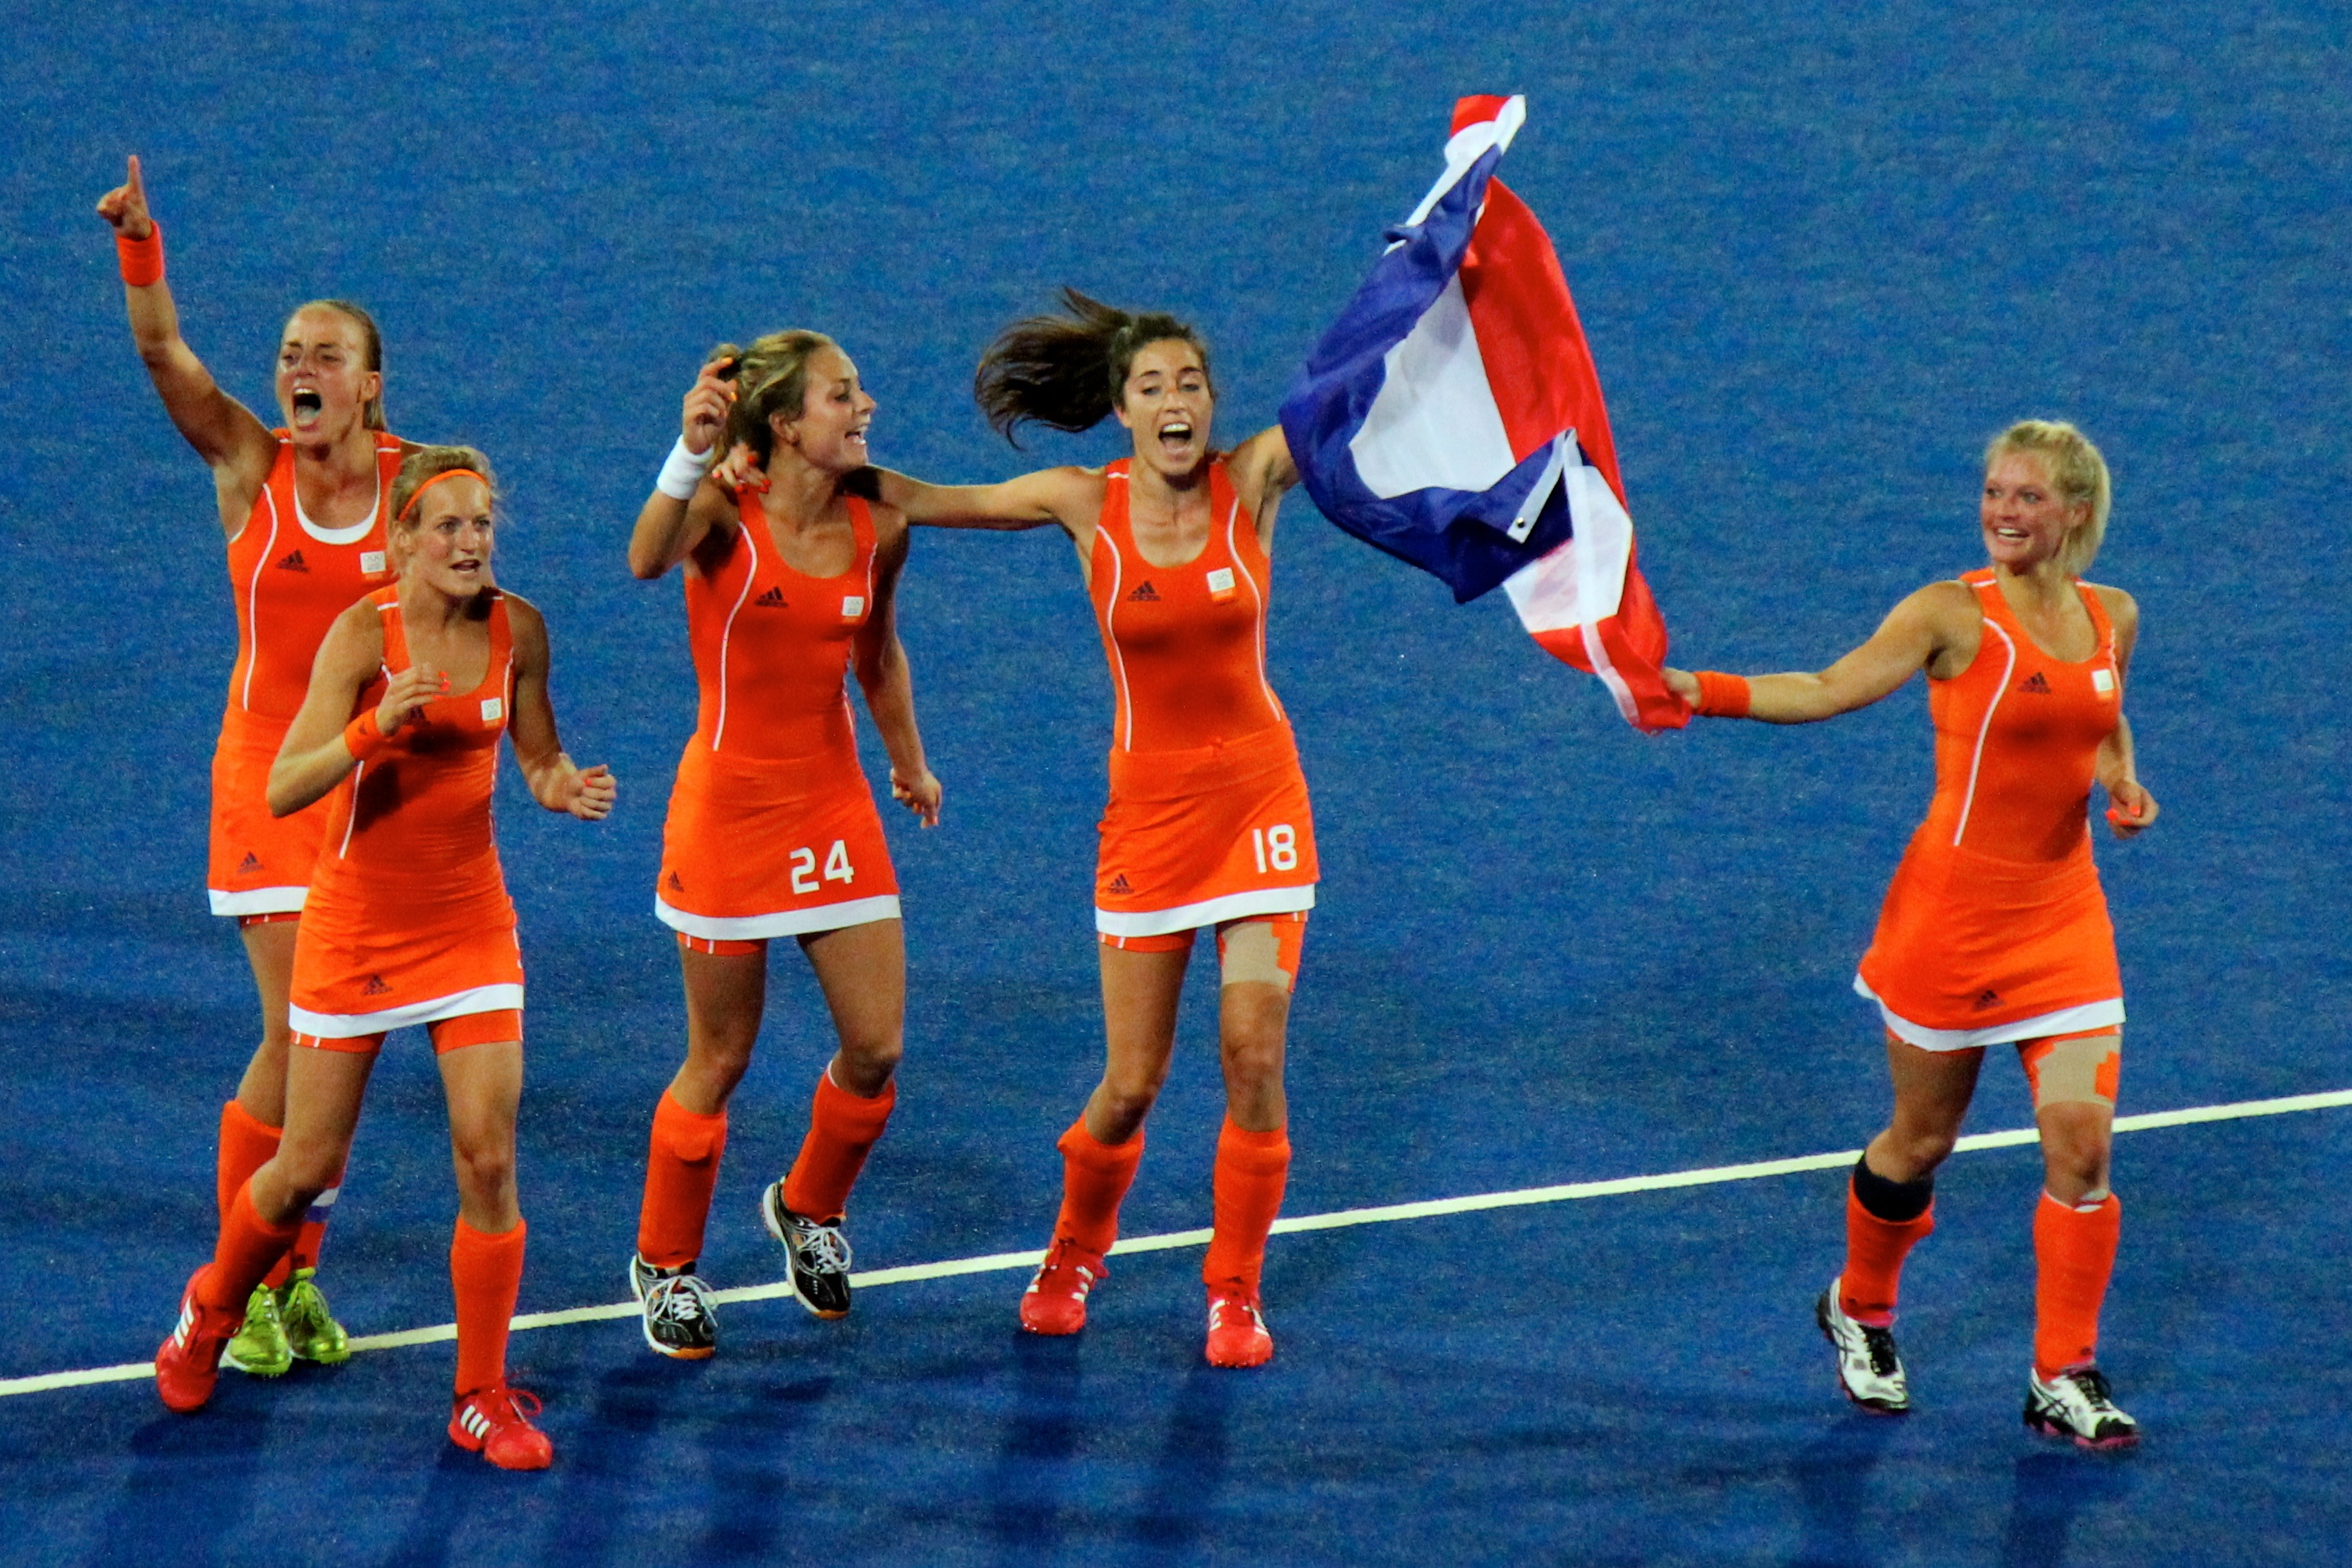 Netherlands women's national field hockey team